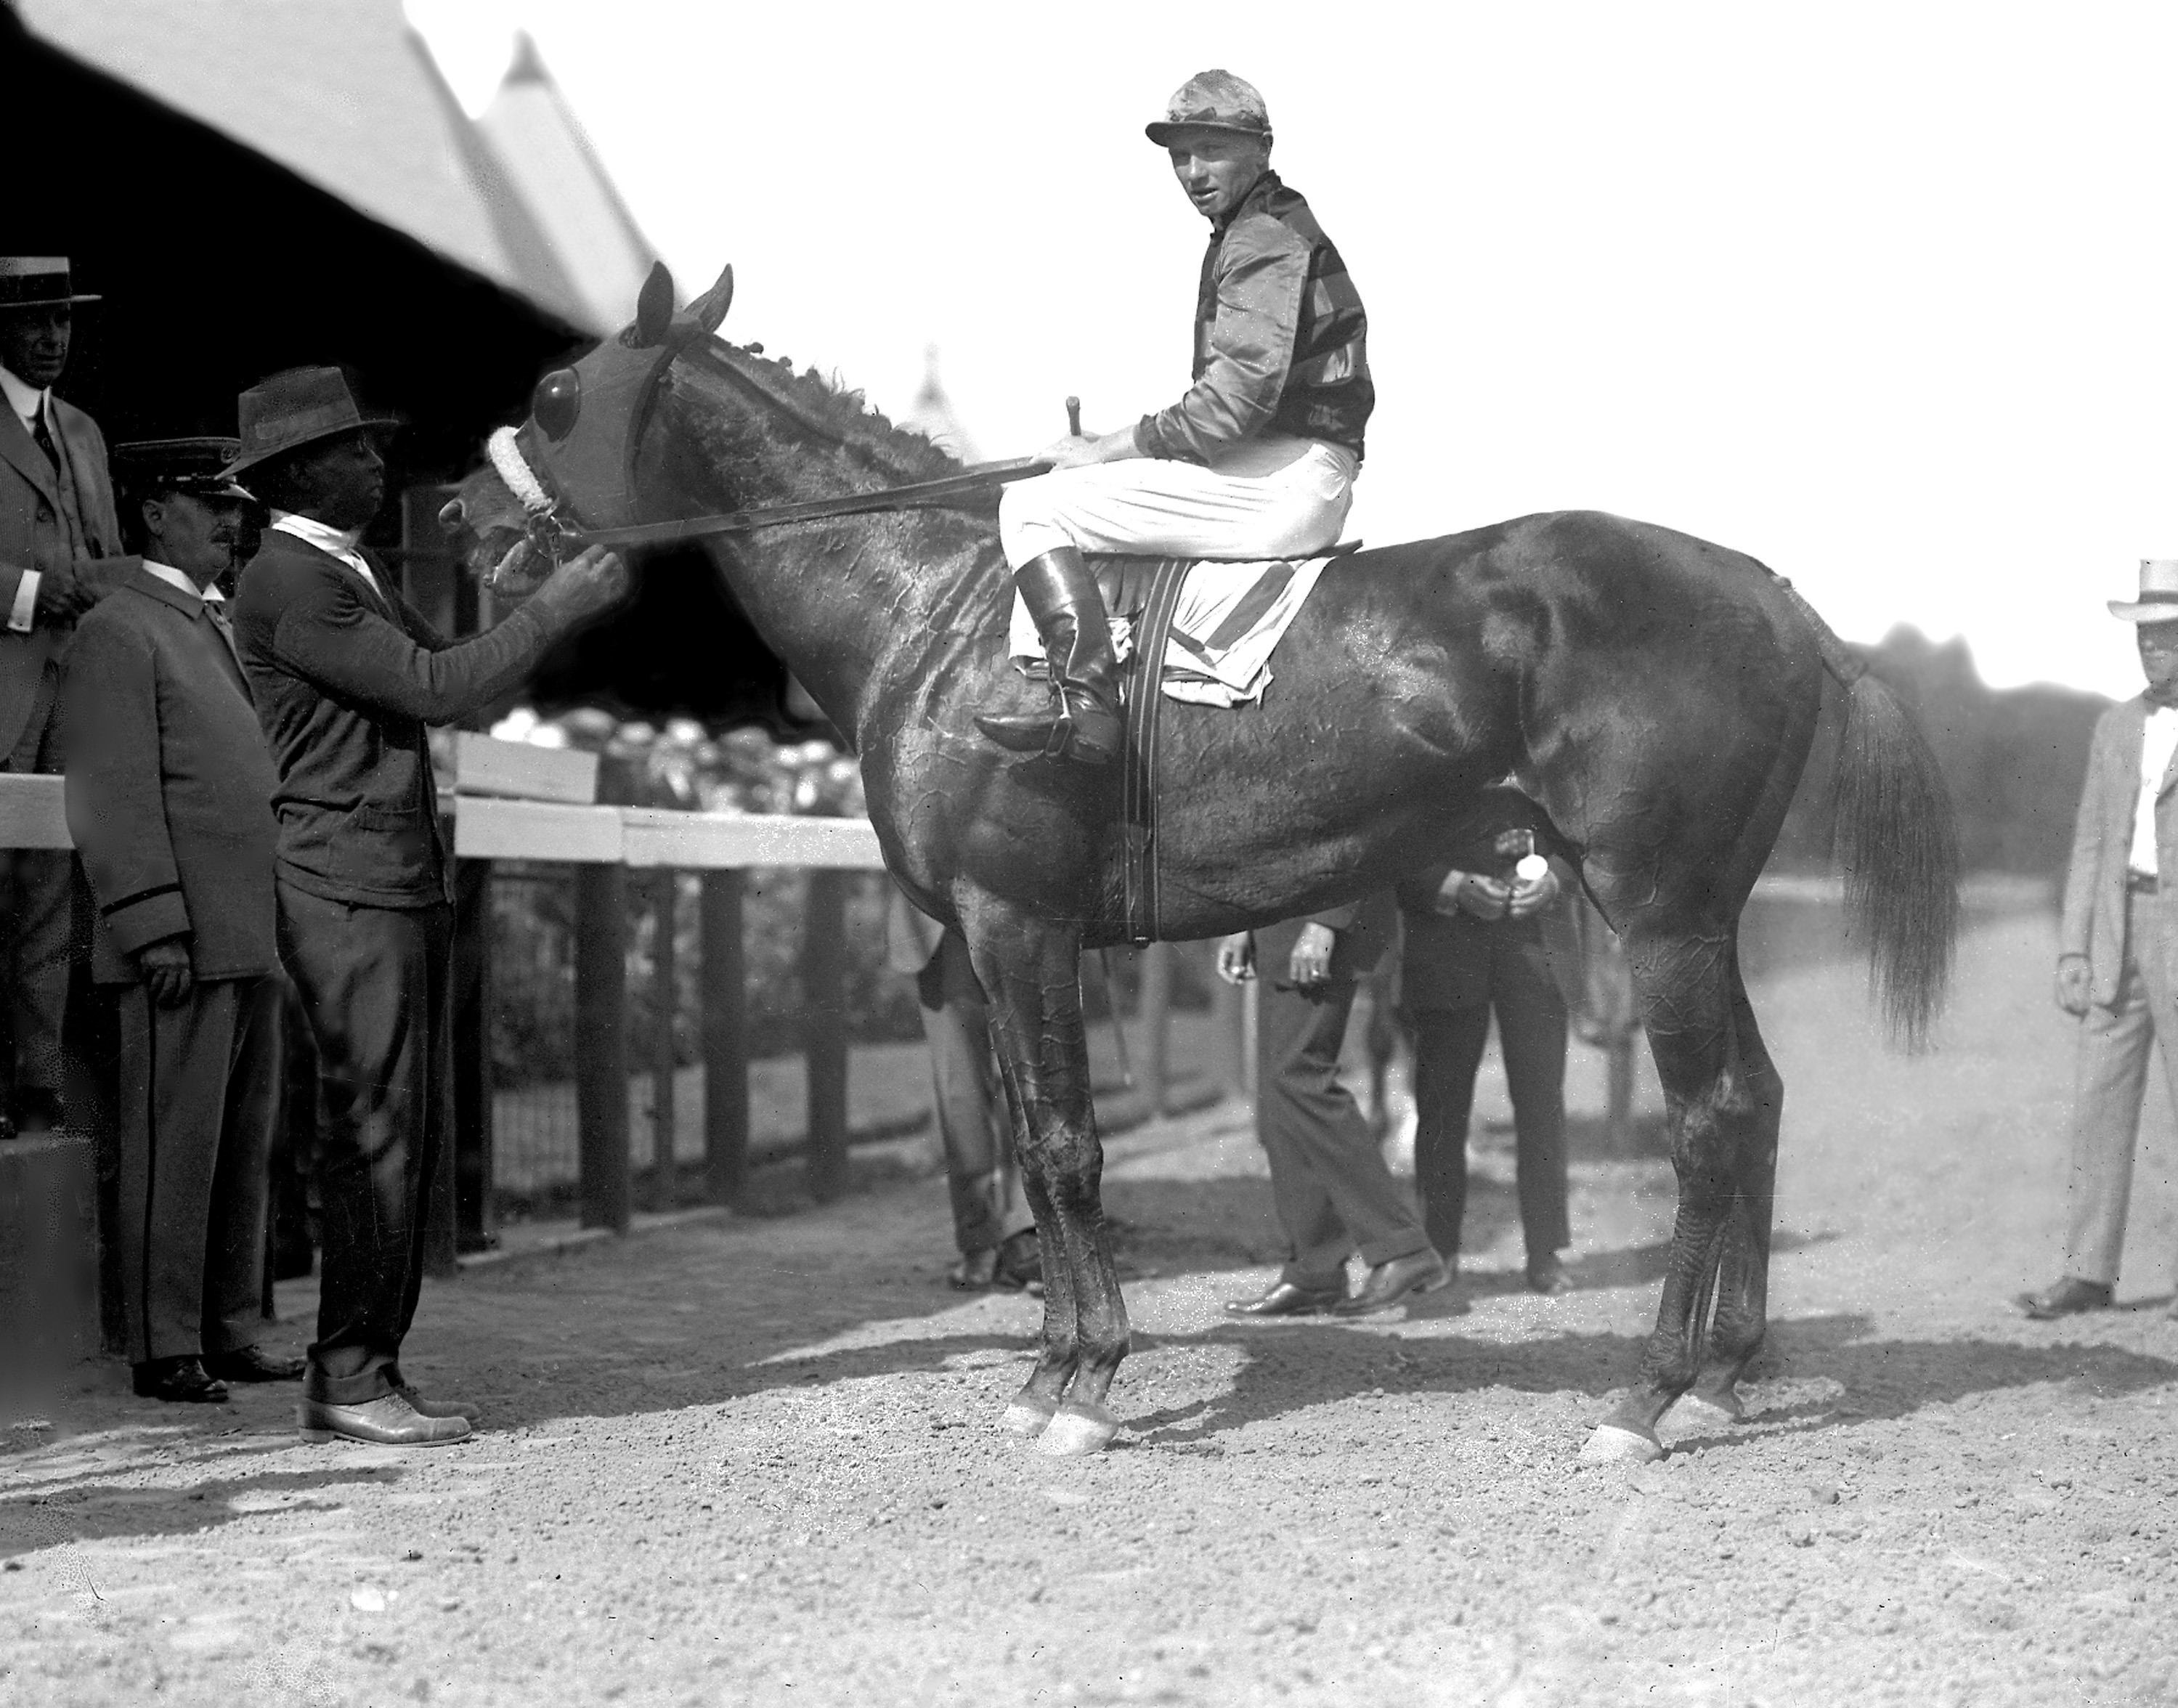 Keeneland Library Cook Collection - 3422 - Earl Sande on Sir Barton, undated